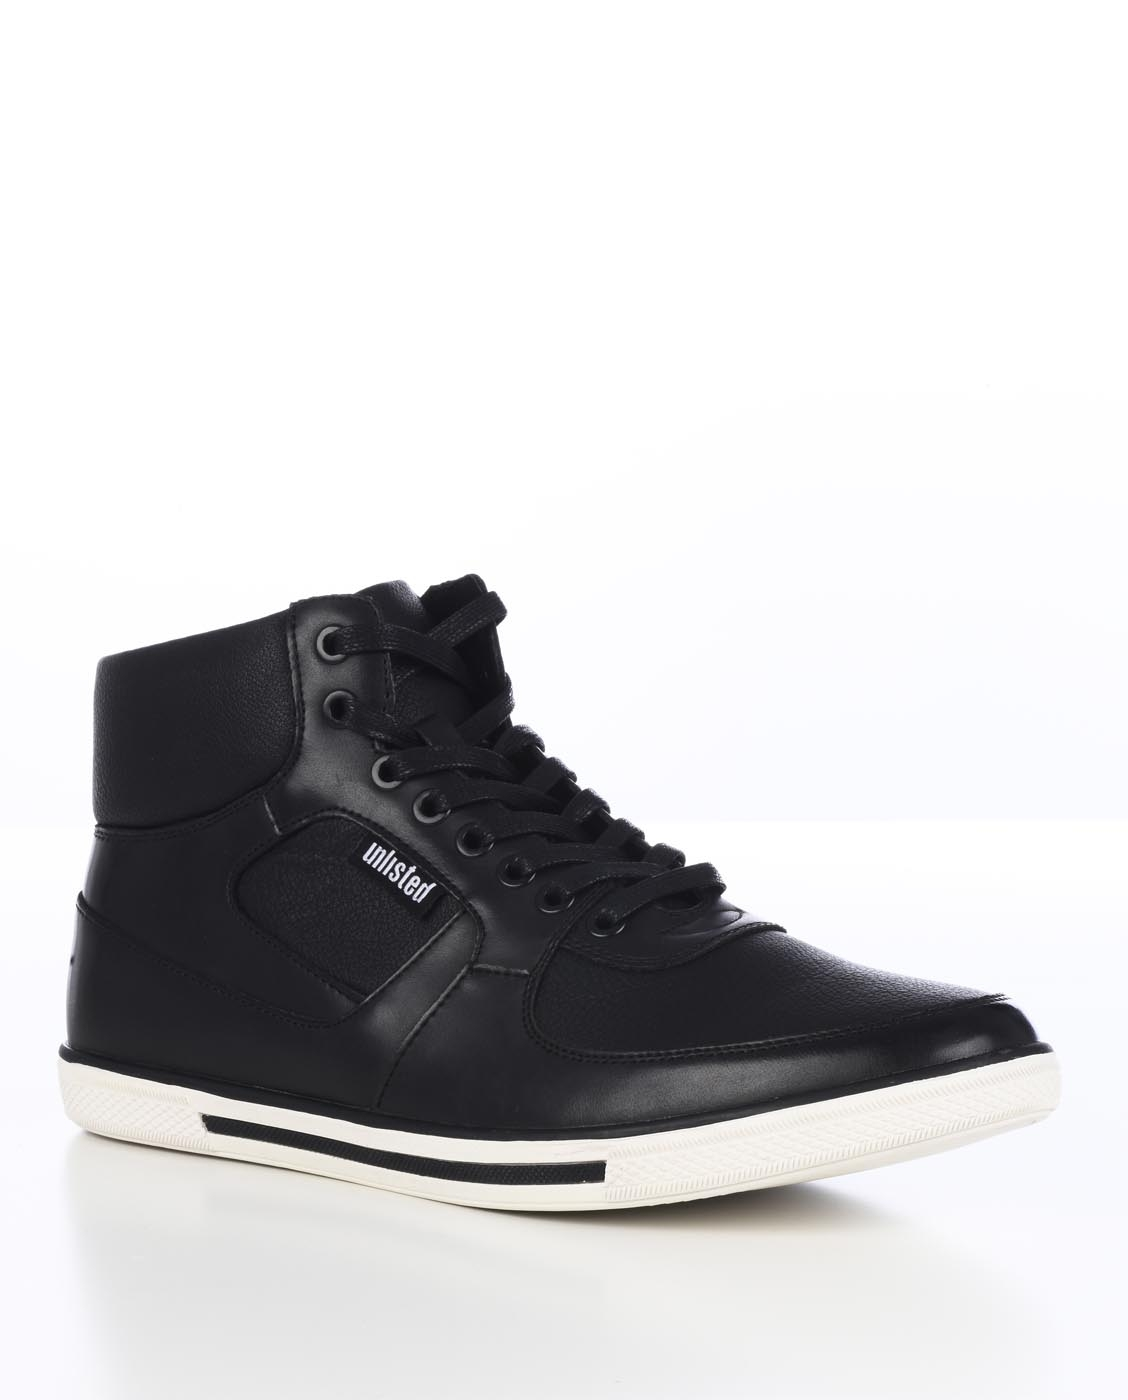 NEW-KENNETH-COLE-UNLISTED-MEN-039-S-CROWN-IT-FASHION-SNEAKER-SHOES-HI-TOP-JMH6SY018 thumbnail 6